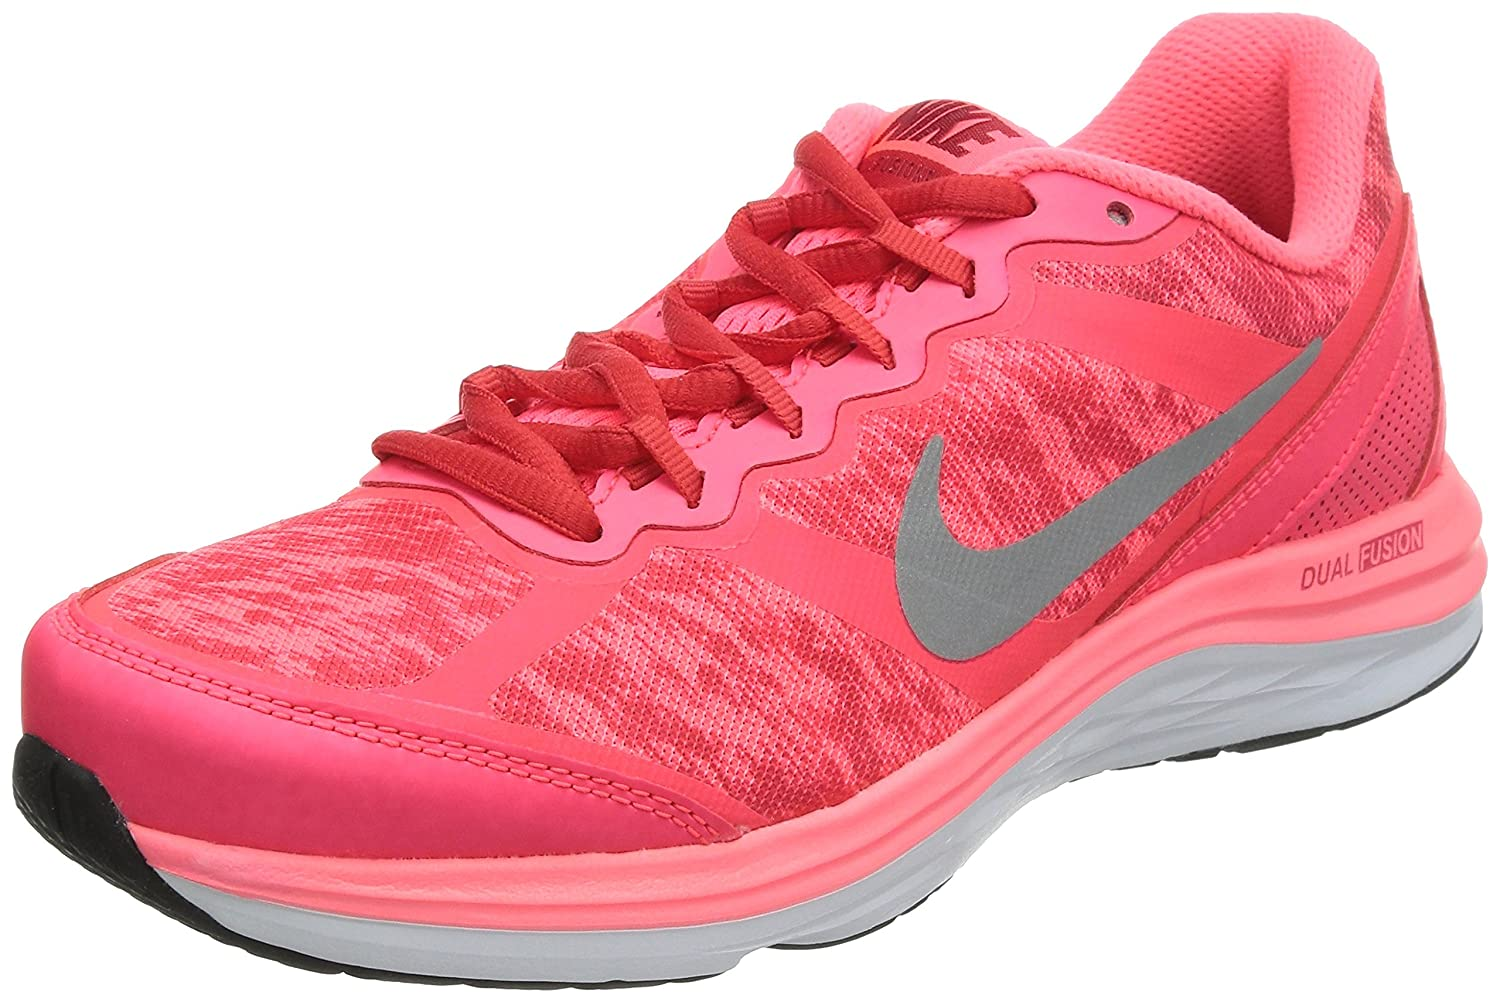 finest selection 226f8 5824e Amazon.com   Nike Dual Fusion Run 3 Flash Womens Running Trainers 685144 Sneakers  Shoes (UK 4.5 US 7 EU 38, Hyper Punch Reflective Silver Action red 601) ...